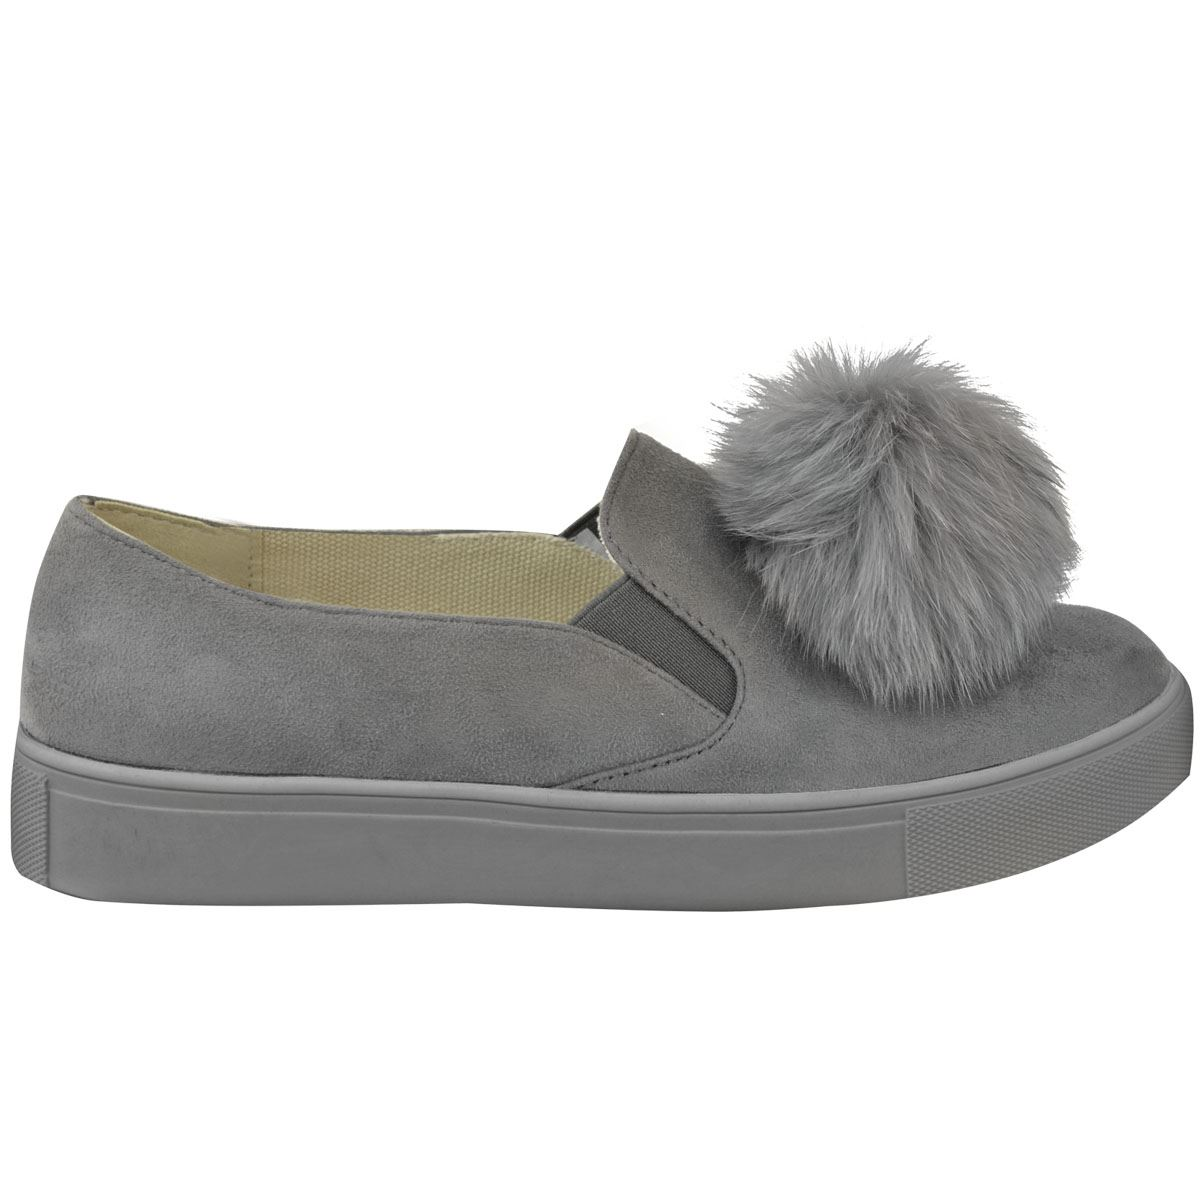 Womens Warm Pom Pom Trainers Ladies Slip On Flats Sneakers Plimsoll Pumps Shoes